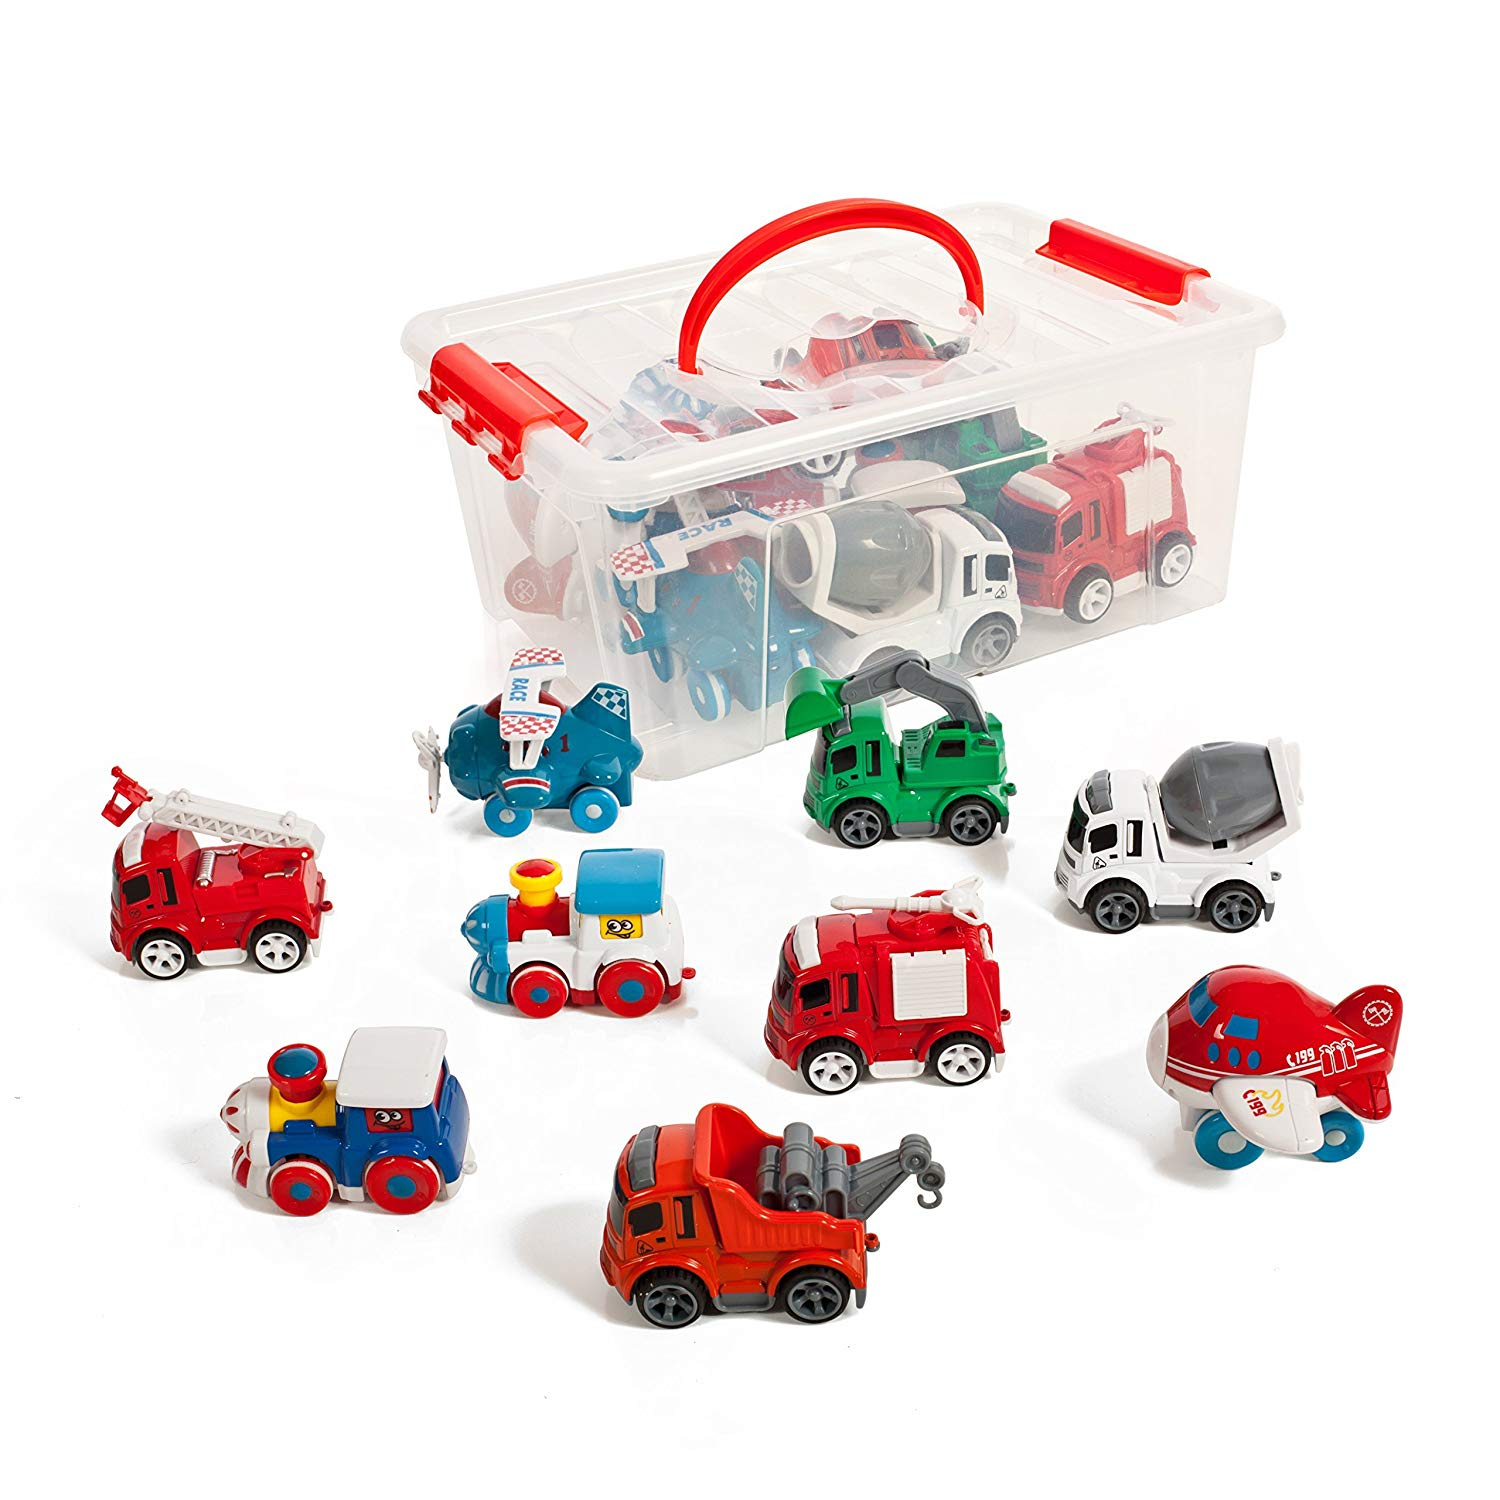 Set of 9 Friction powered Train Air Construction Fire Die cast vehicles in a storage container. by IQ Toys